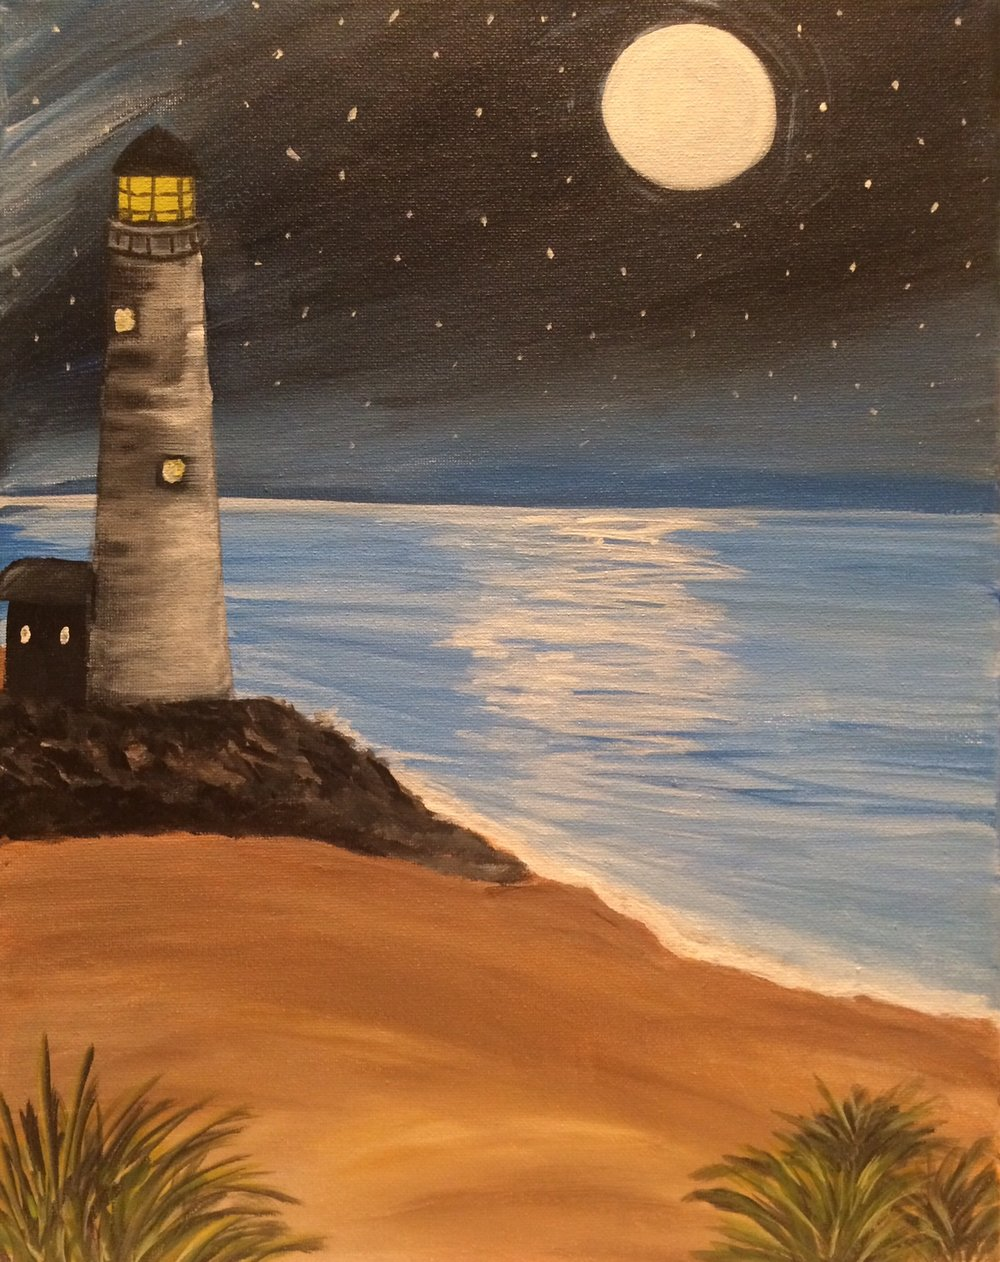 Moonlight lighthouse